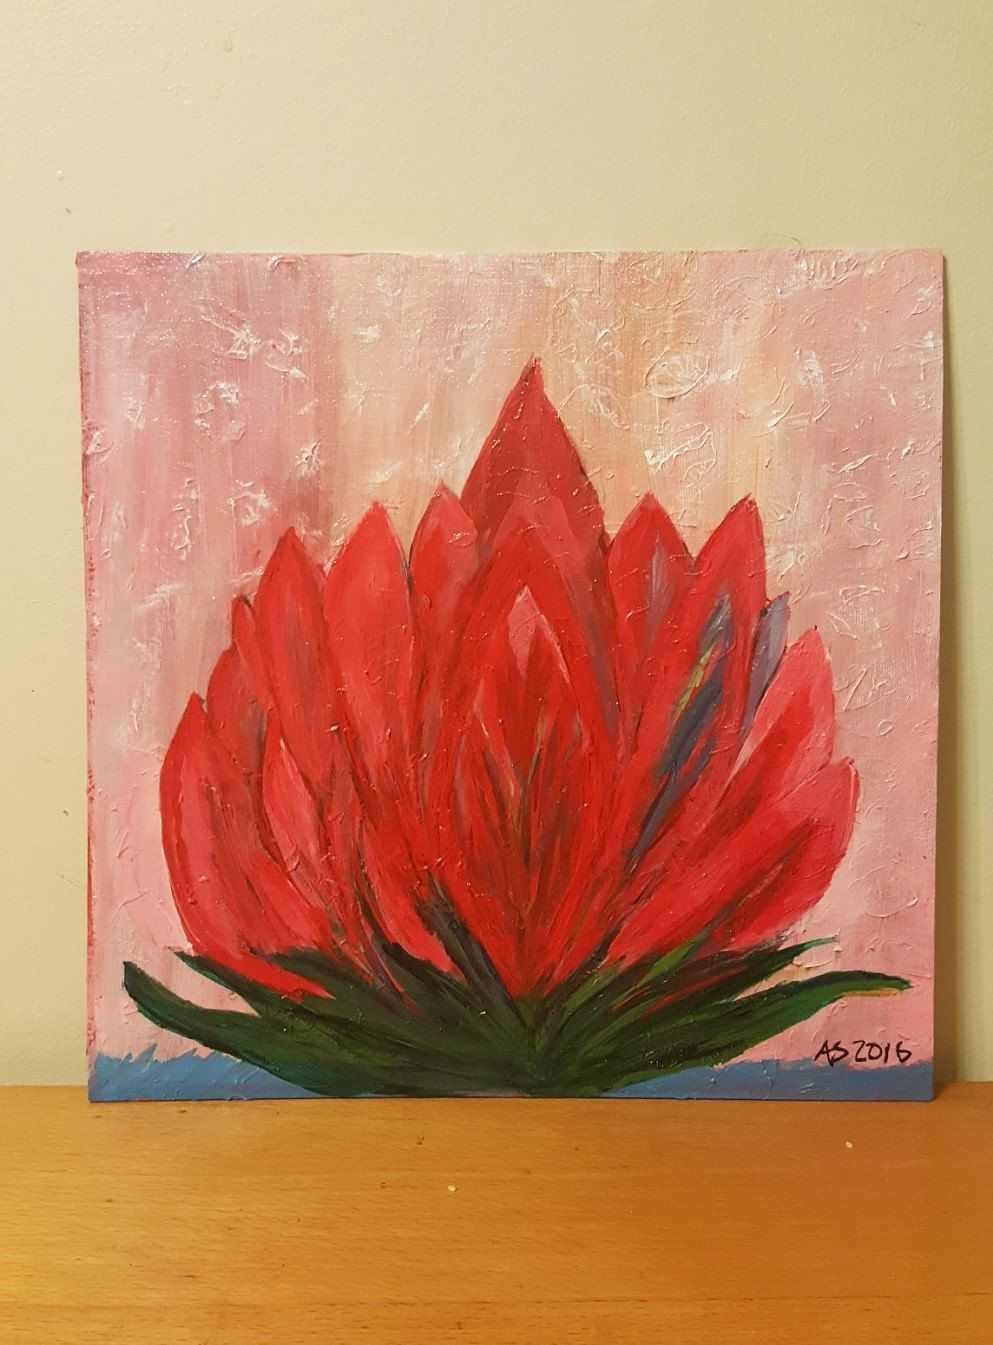 Lotus flower painting i love painting lotus flowers save this pin lotus flower painting i love painting lotus flowers save this pin for purchase later for your yoga studio by aydasartstore on etsy izmirmasajfo